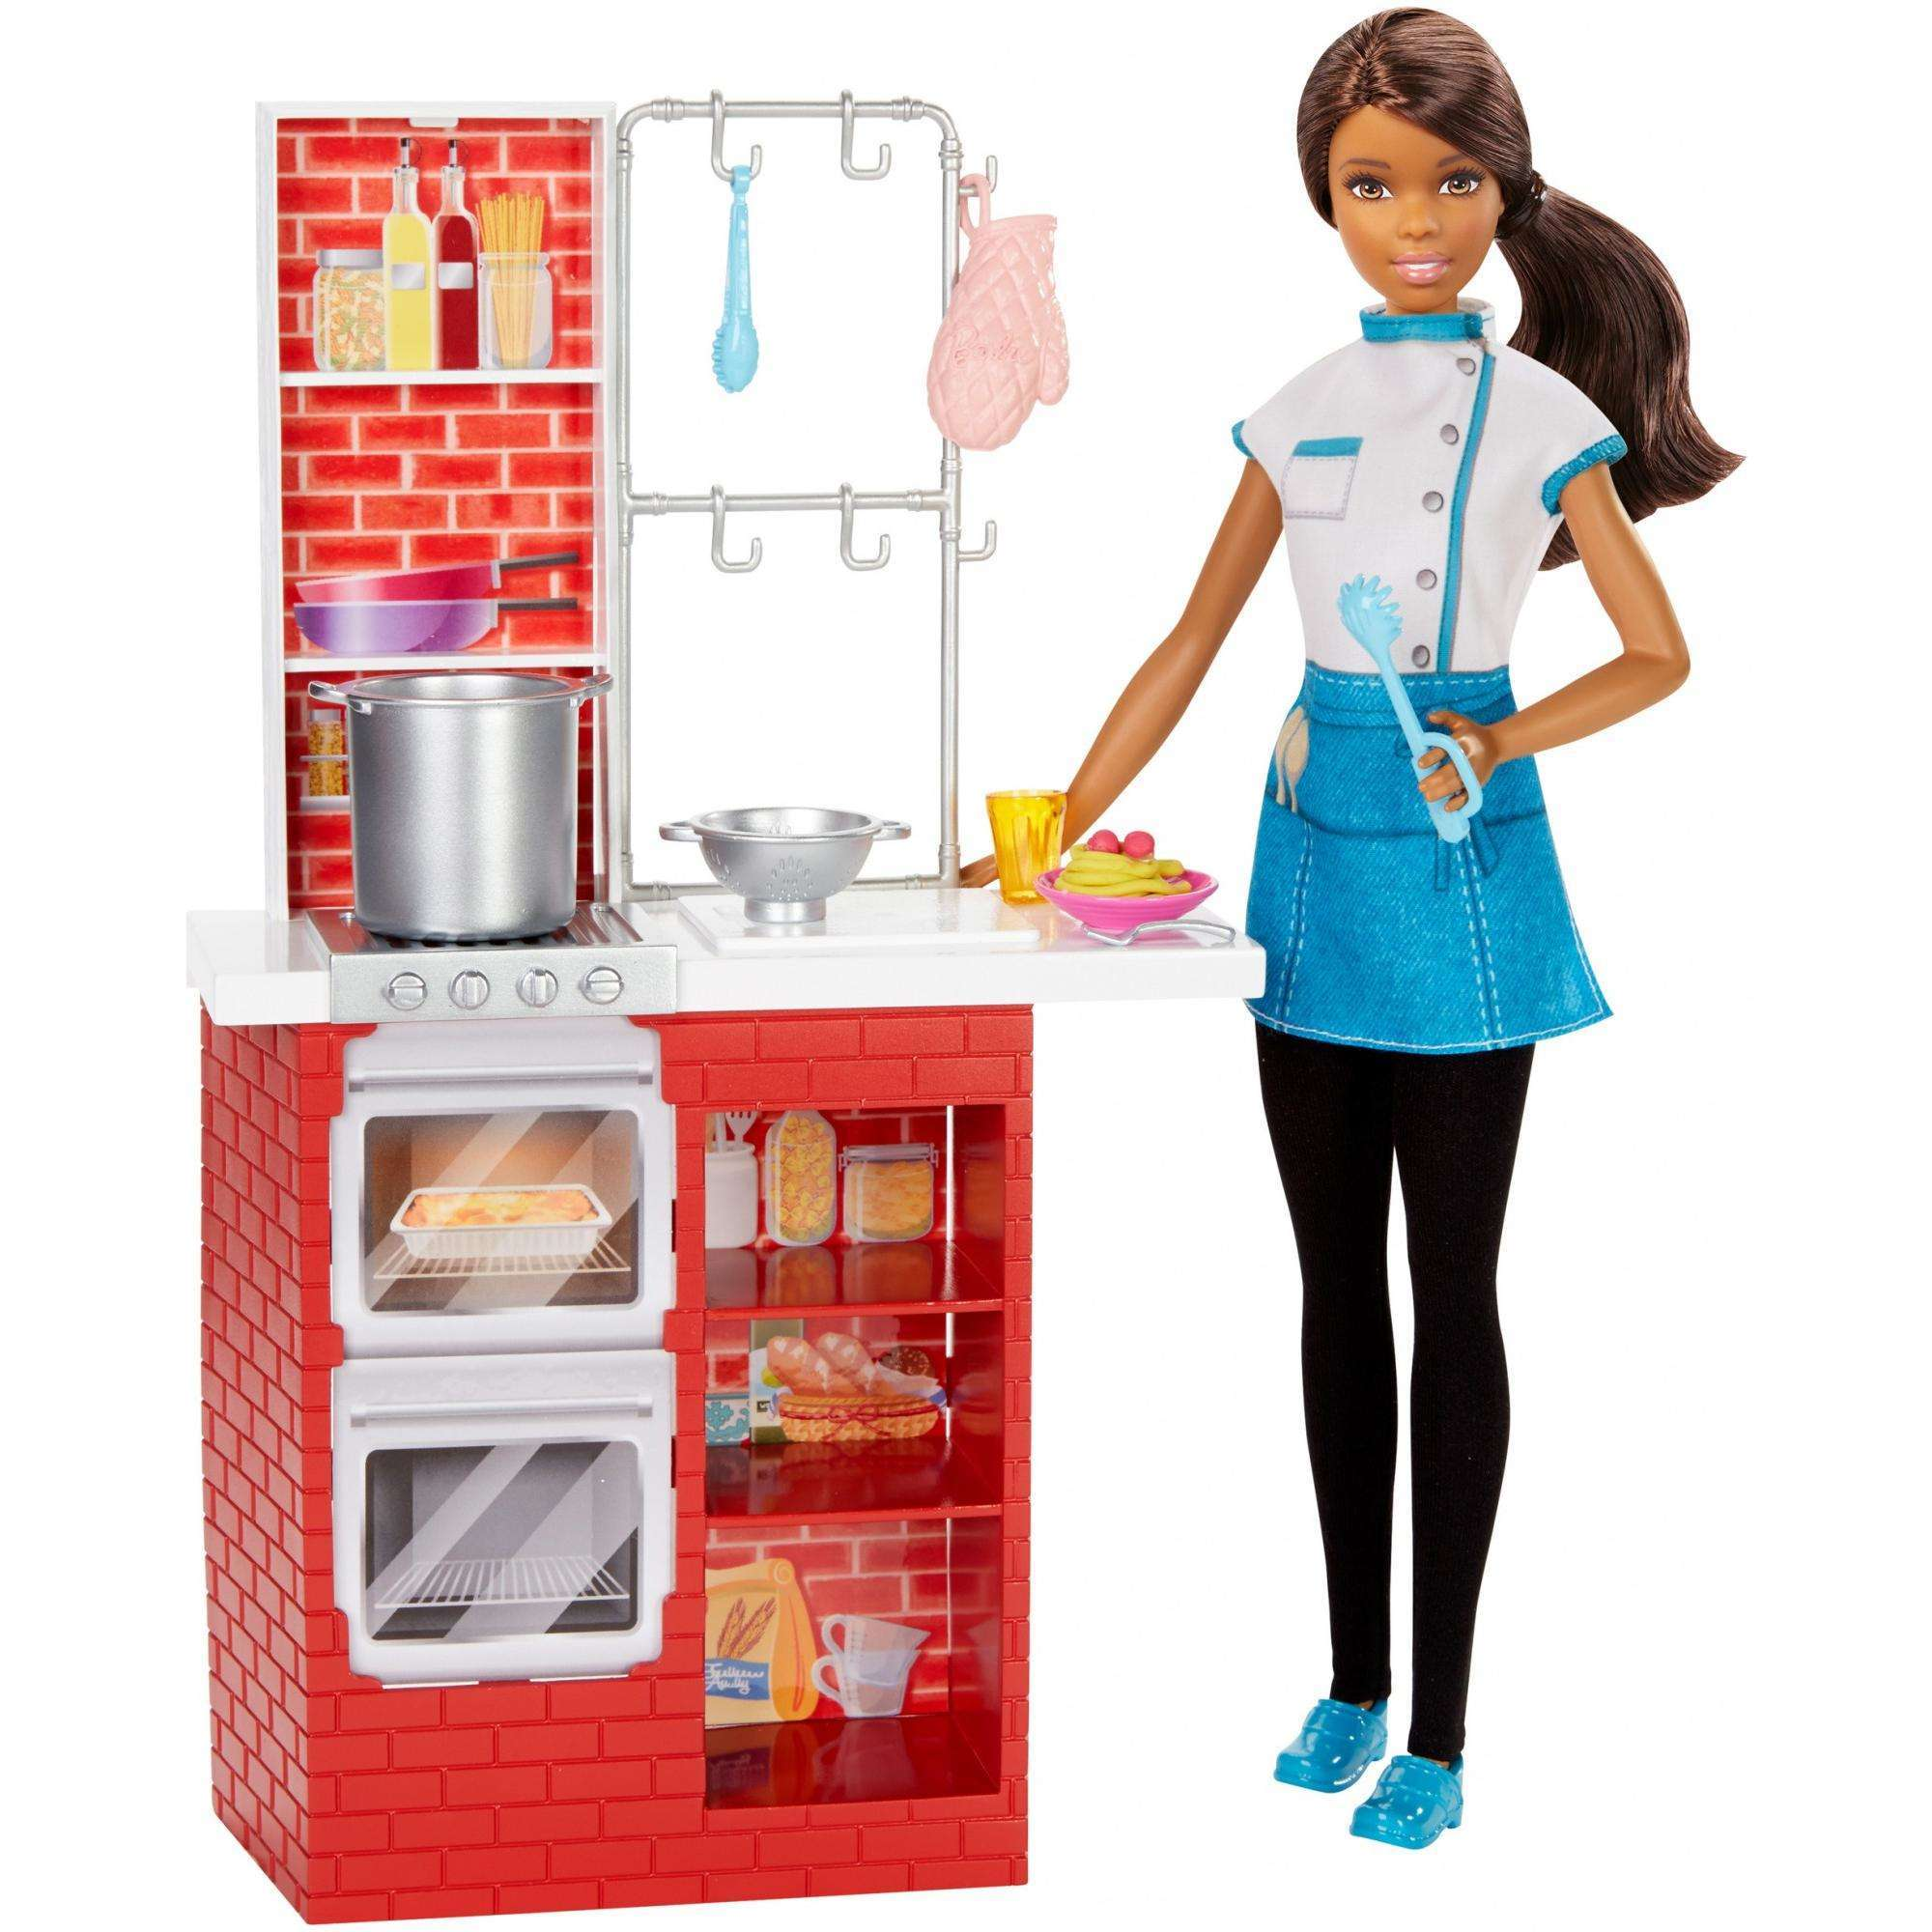 Barbie Spaghetti Chef Nikki Doll and Playset by Mattel